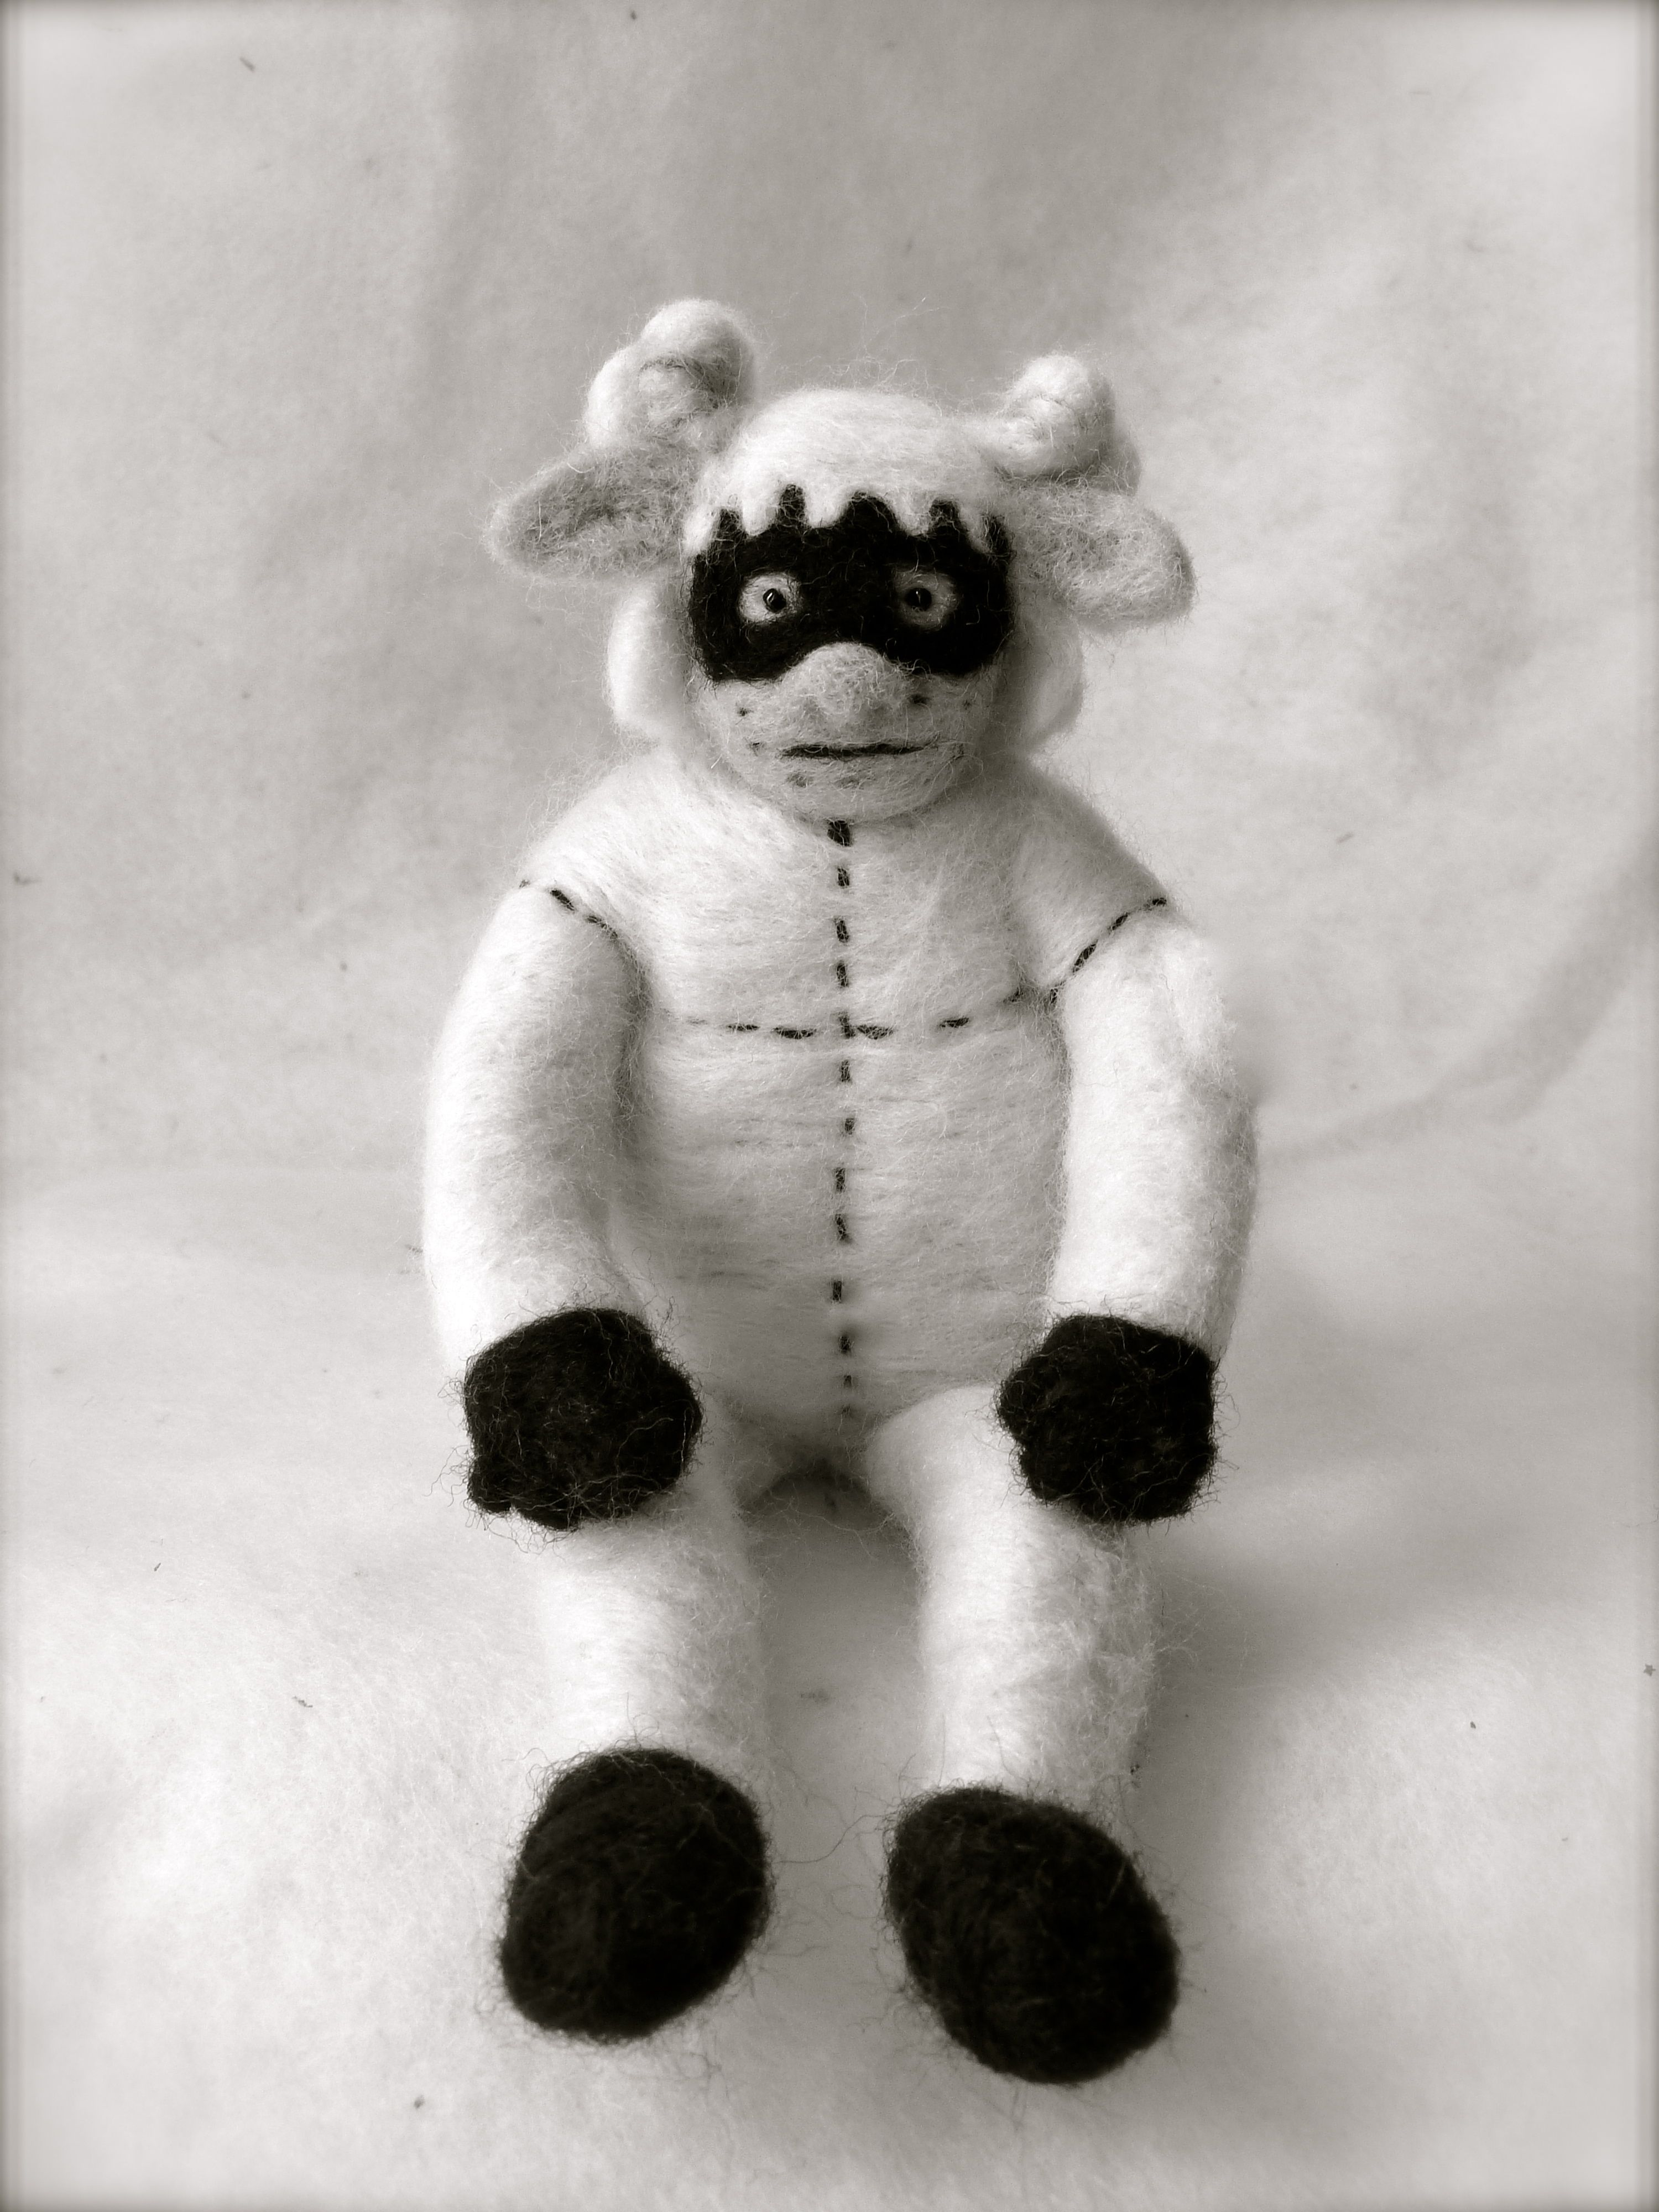 Sheepman (needle felted by gina)